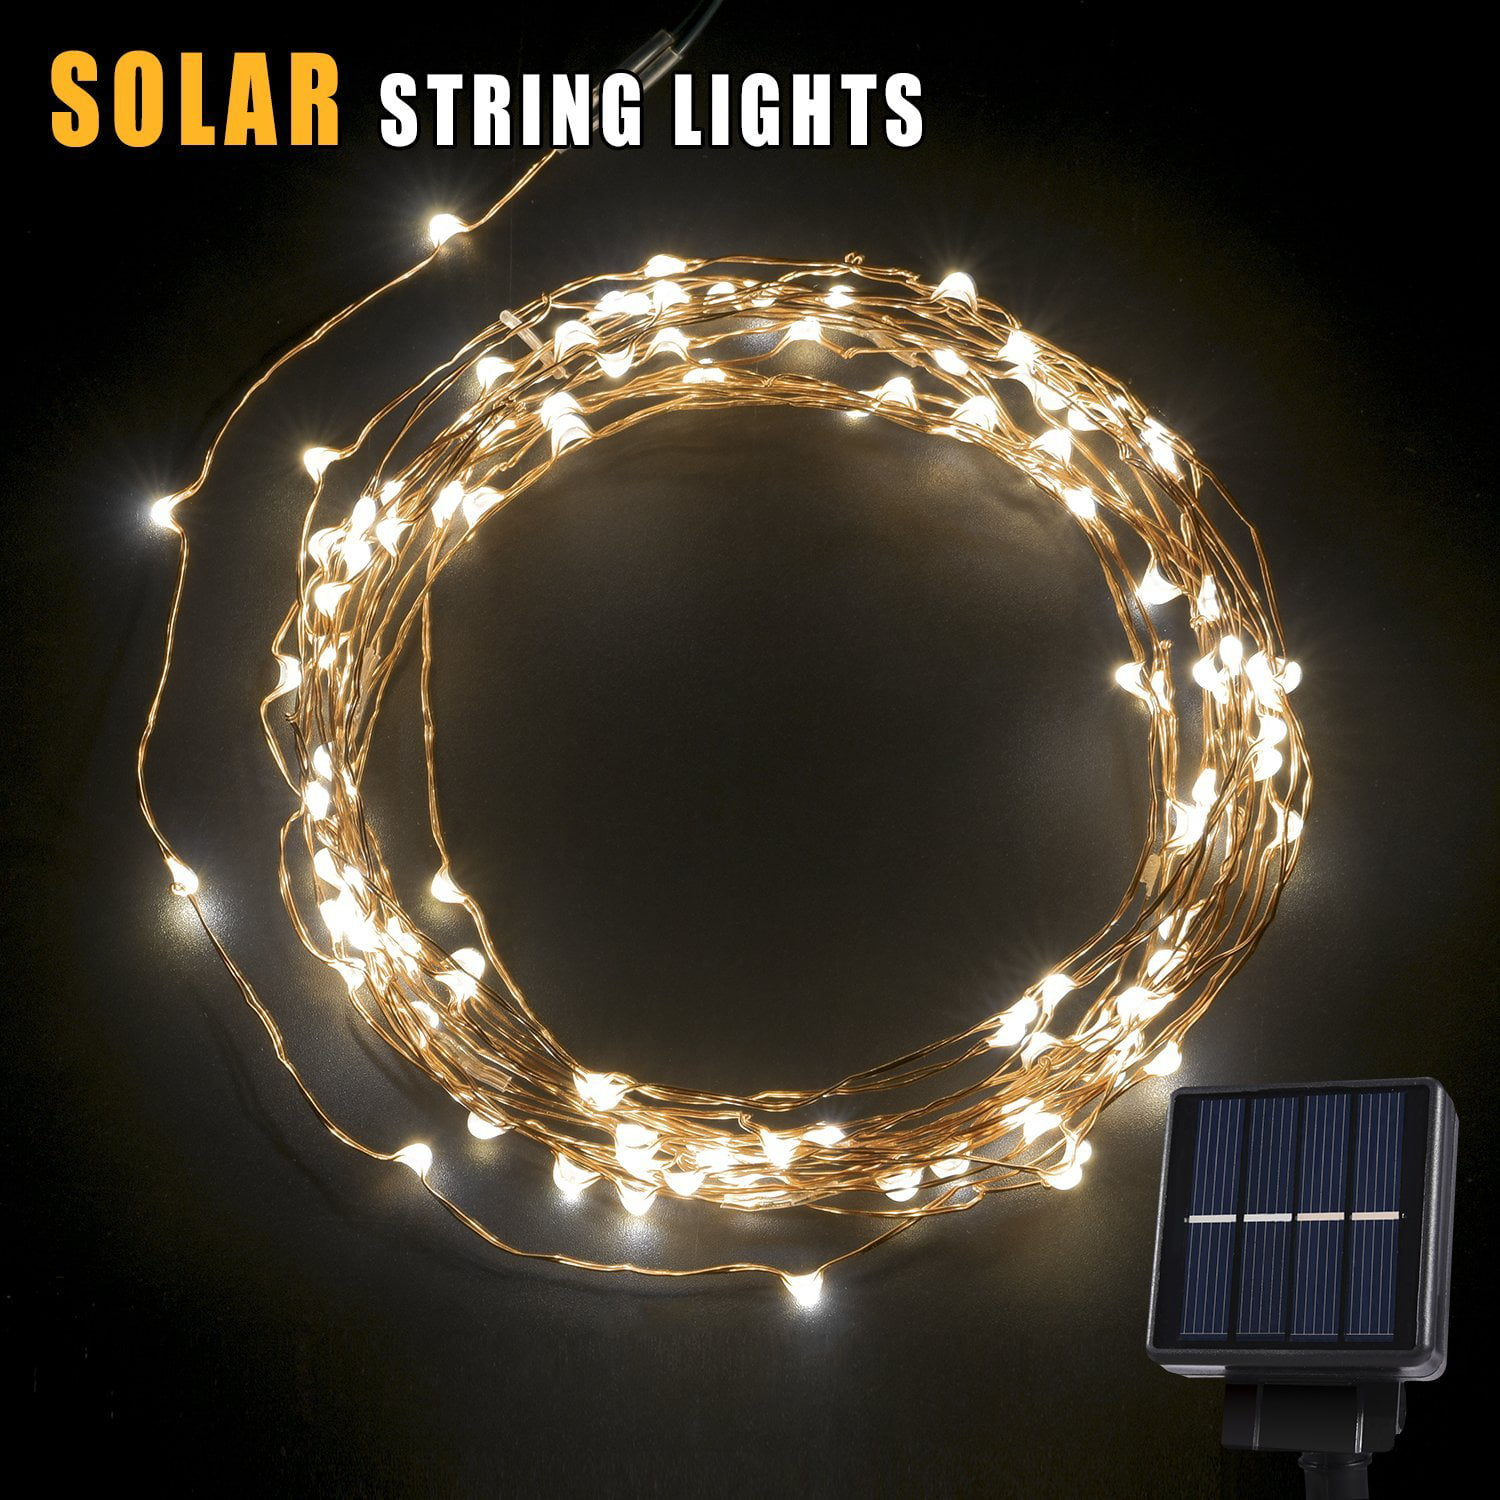 Betterhome 120 Leds Outdoor Solar Powered Led String Lights 19ft Waterproof Copper Wire Lights For Garden Home Party Walmart Com